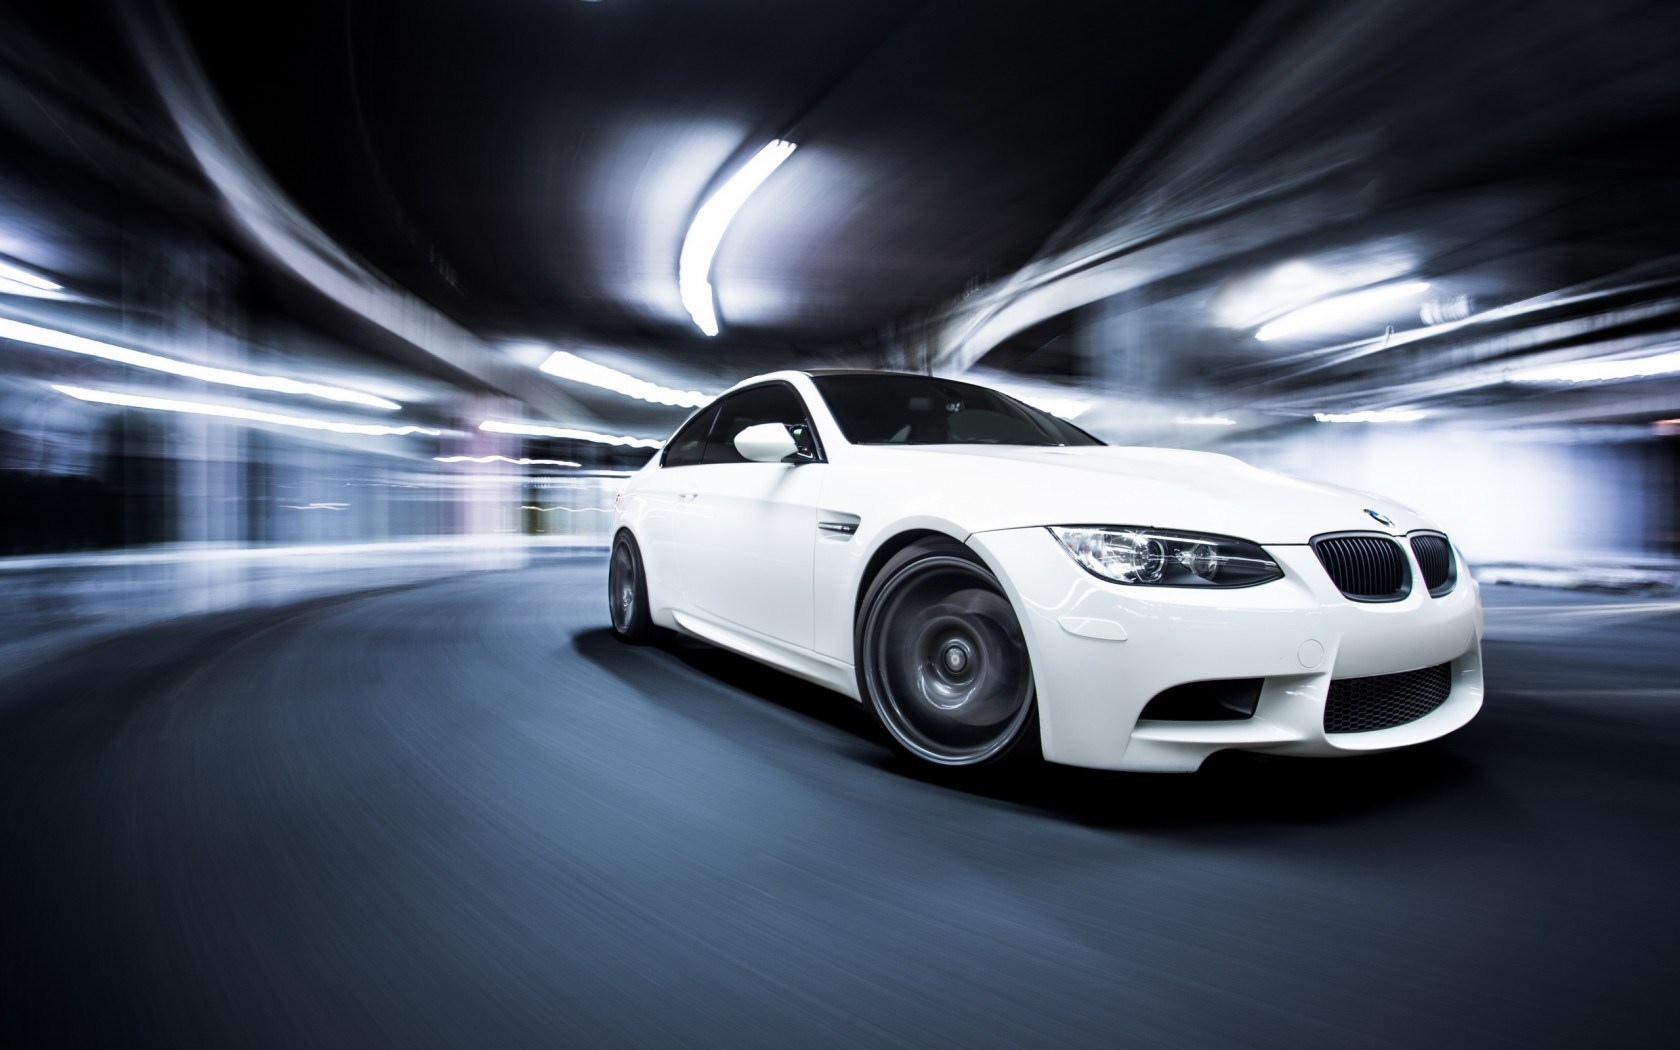 BMW M3 Wallpaper and Background Image 1680x1050 ID